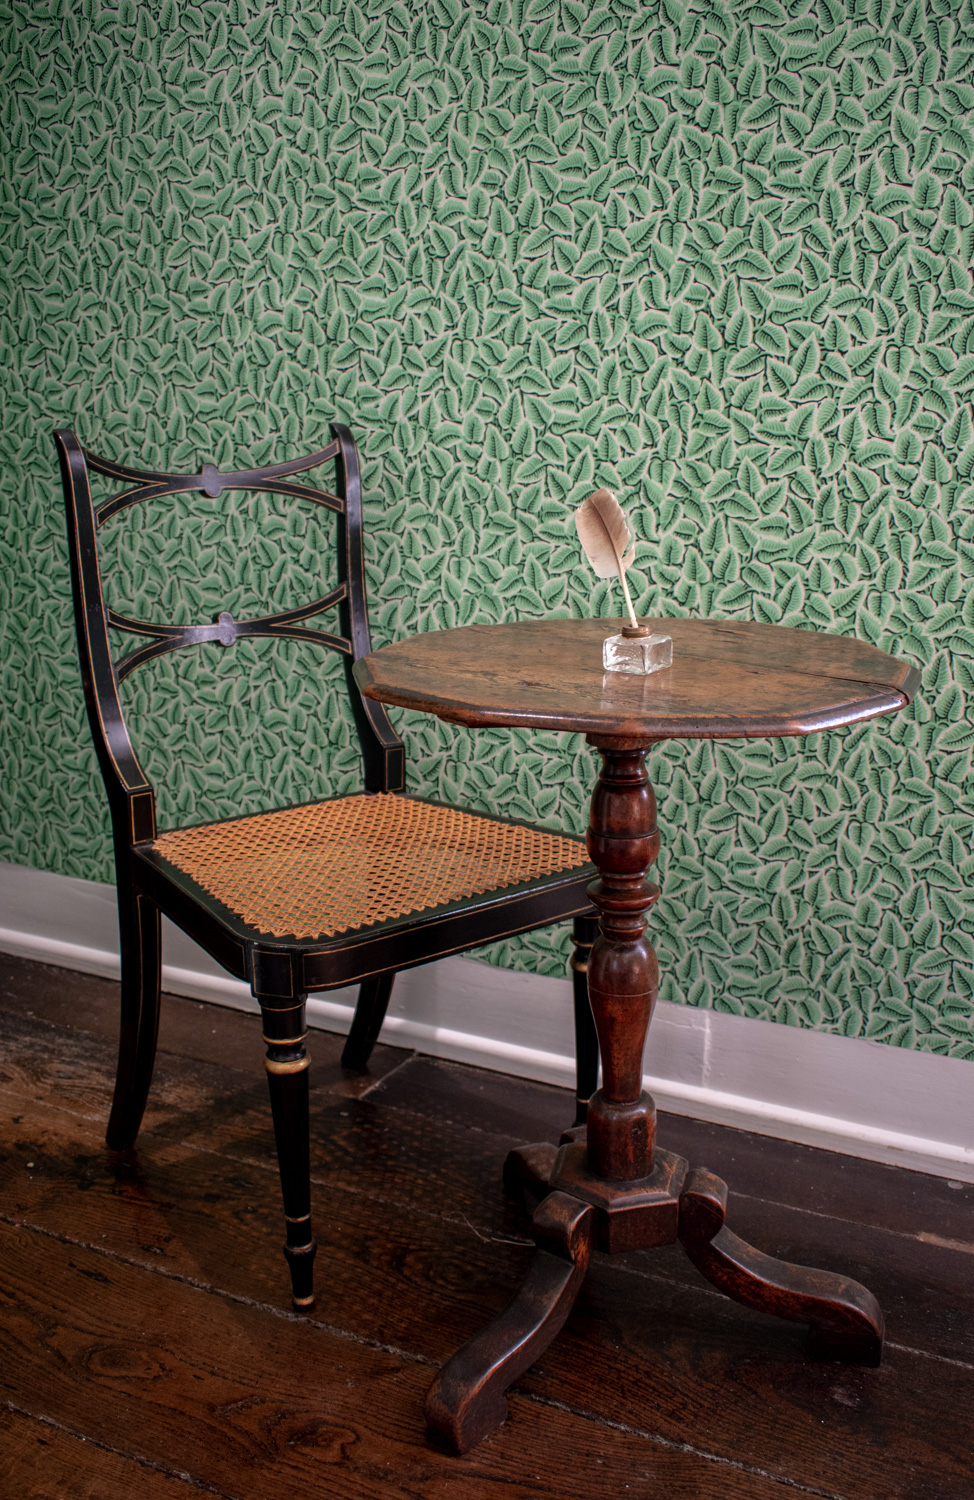 Jane Austen's writing table set against the Chawton Leaf wallpaper in the Dining Parlour